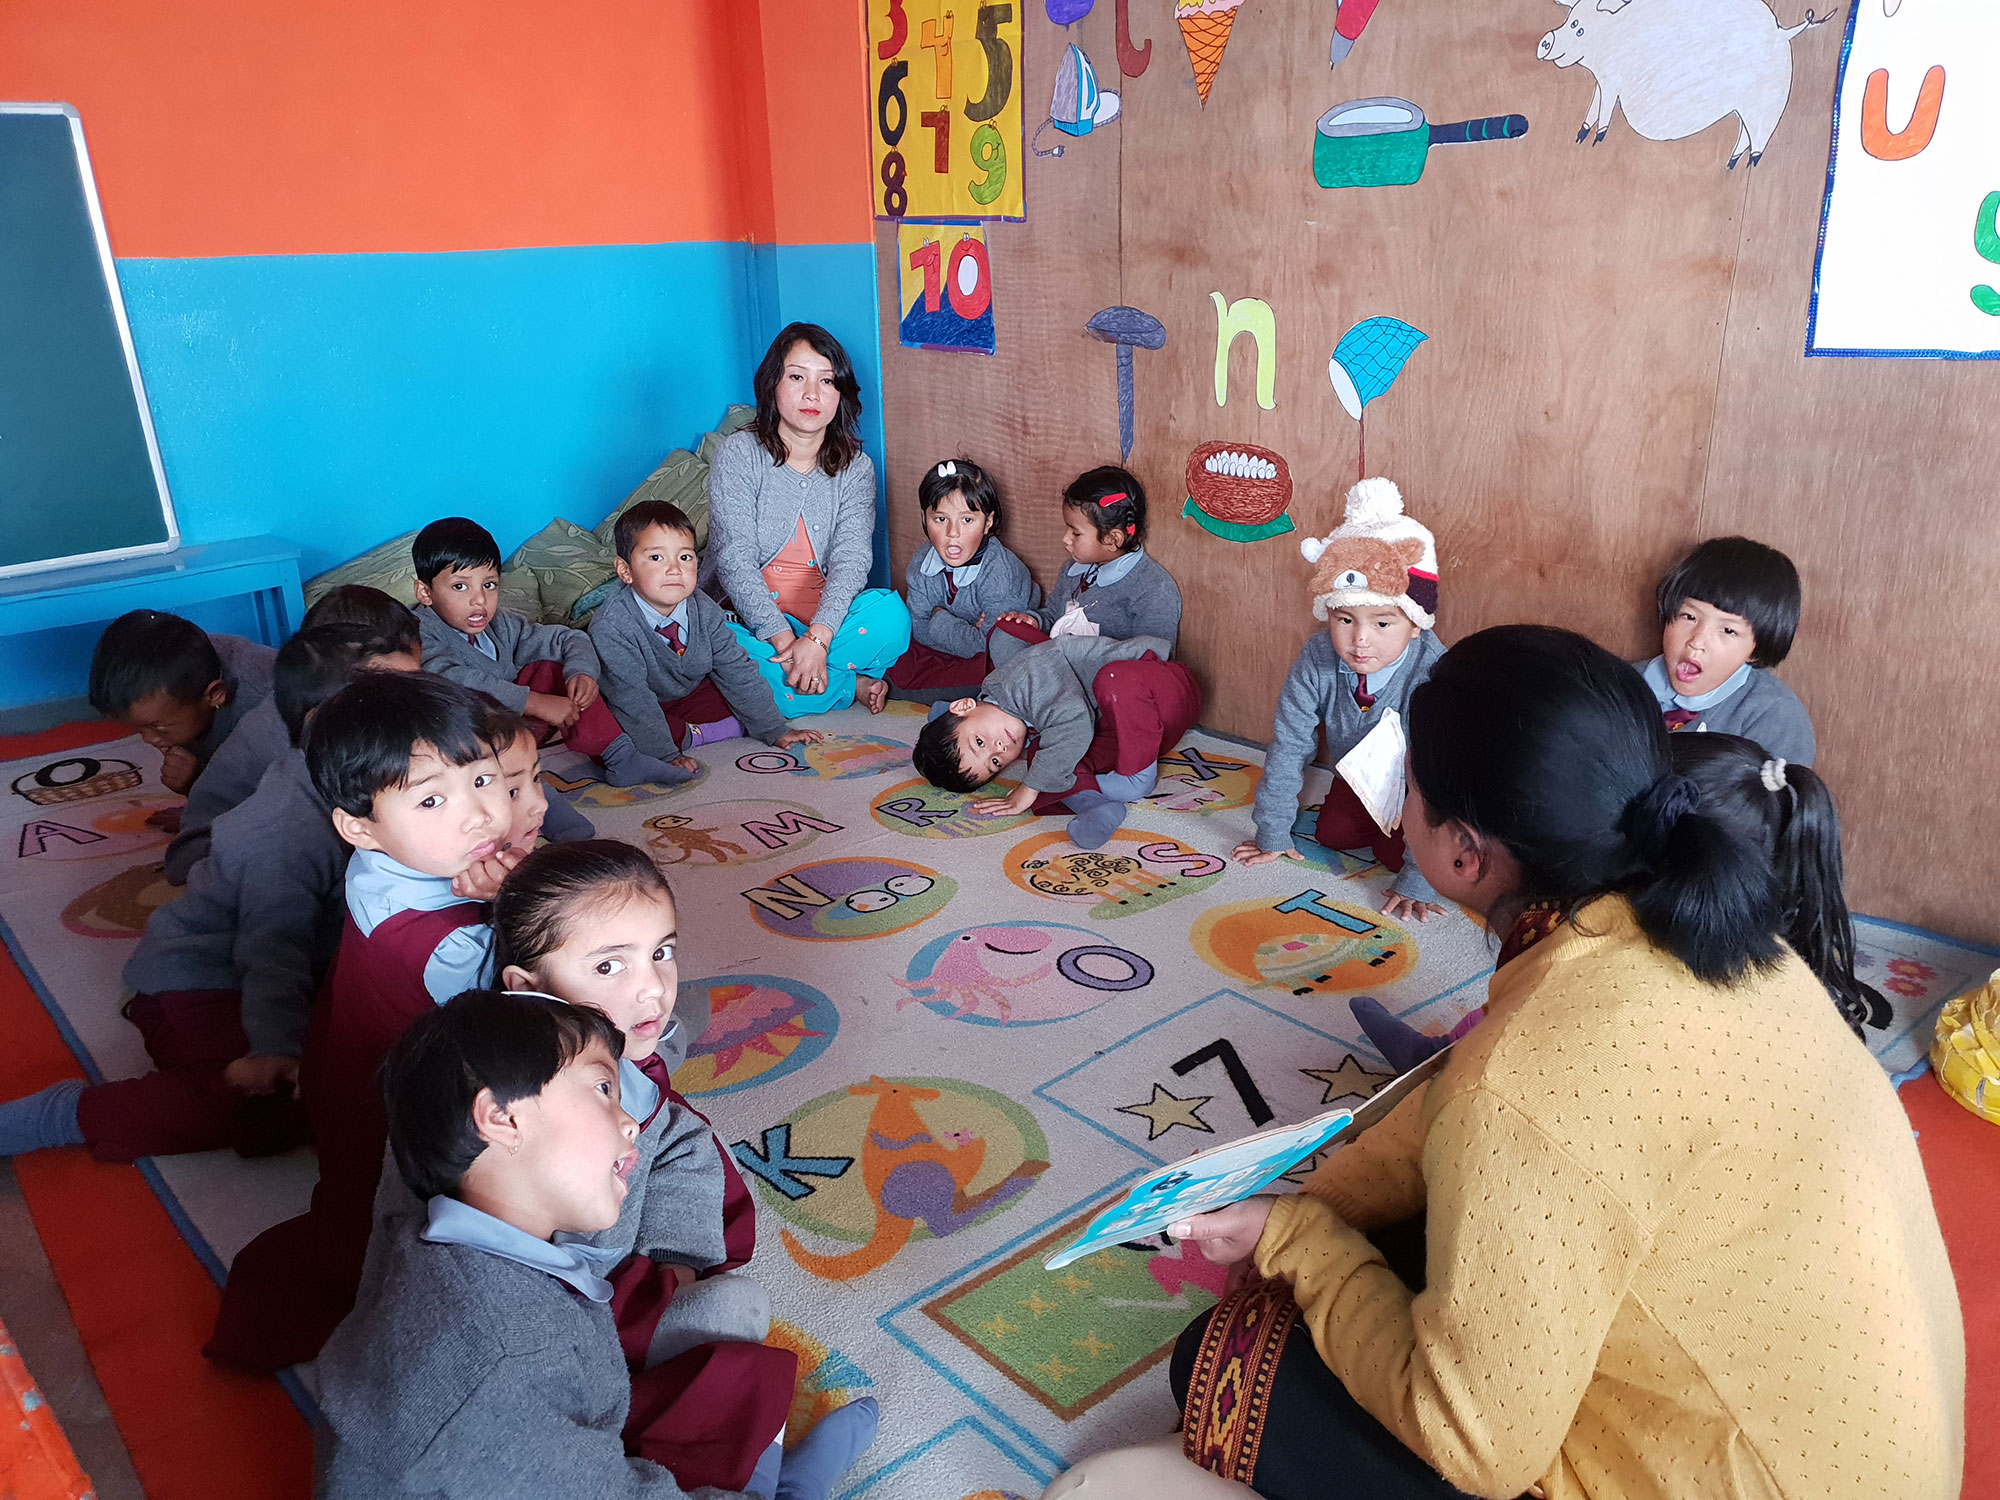 Story time for students in India